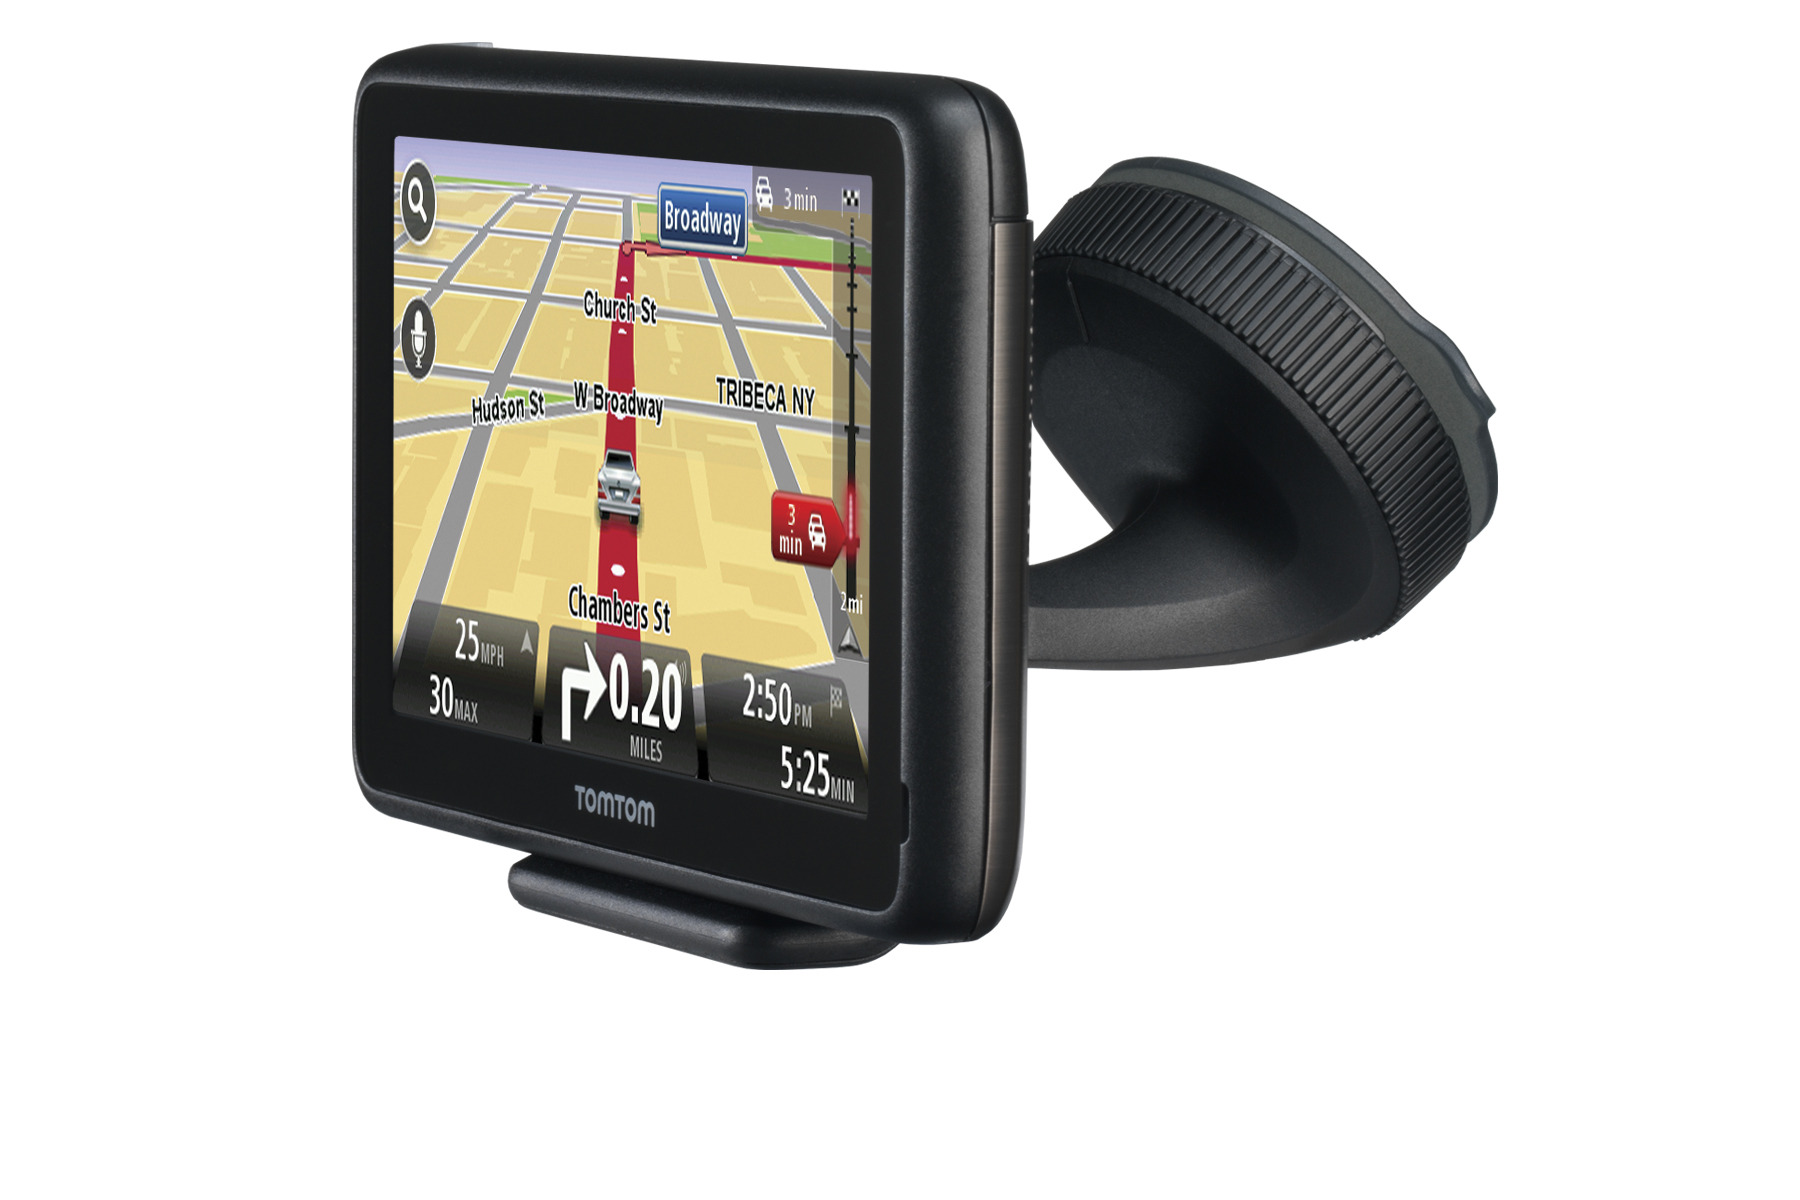 TomTom updates its GO series of navigators with a new capacitive touchscreen and an updated graphic interface.